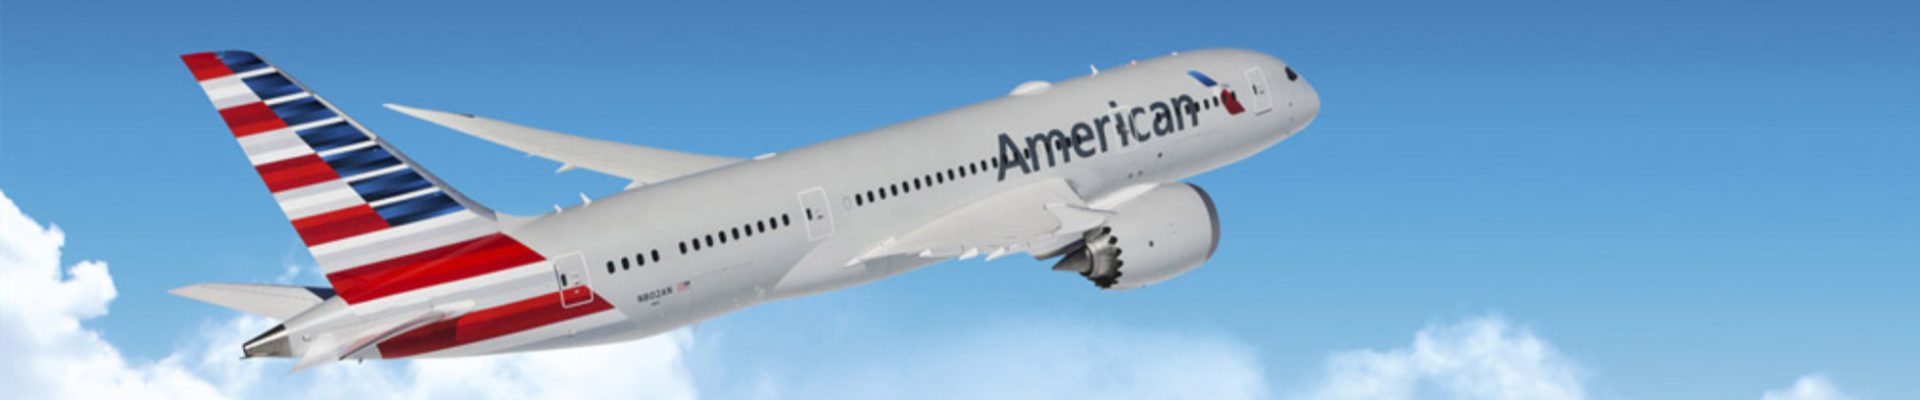 USA to Croatia Flights - American Airlines 1